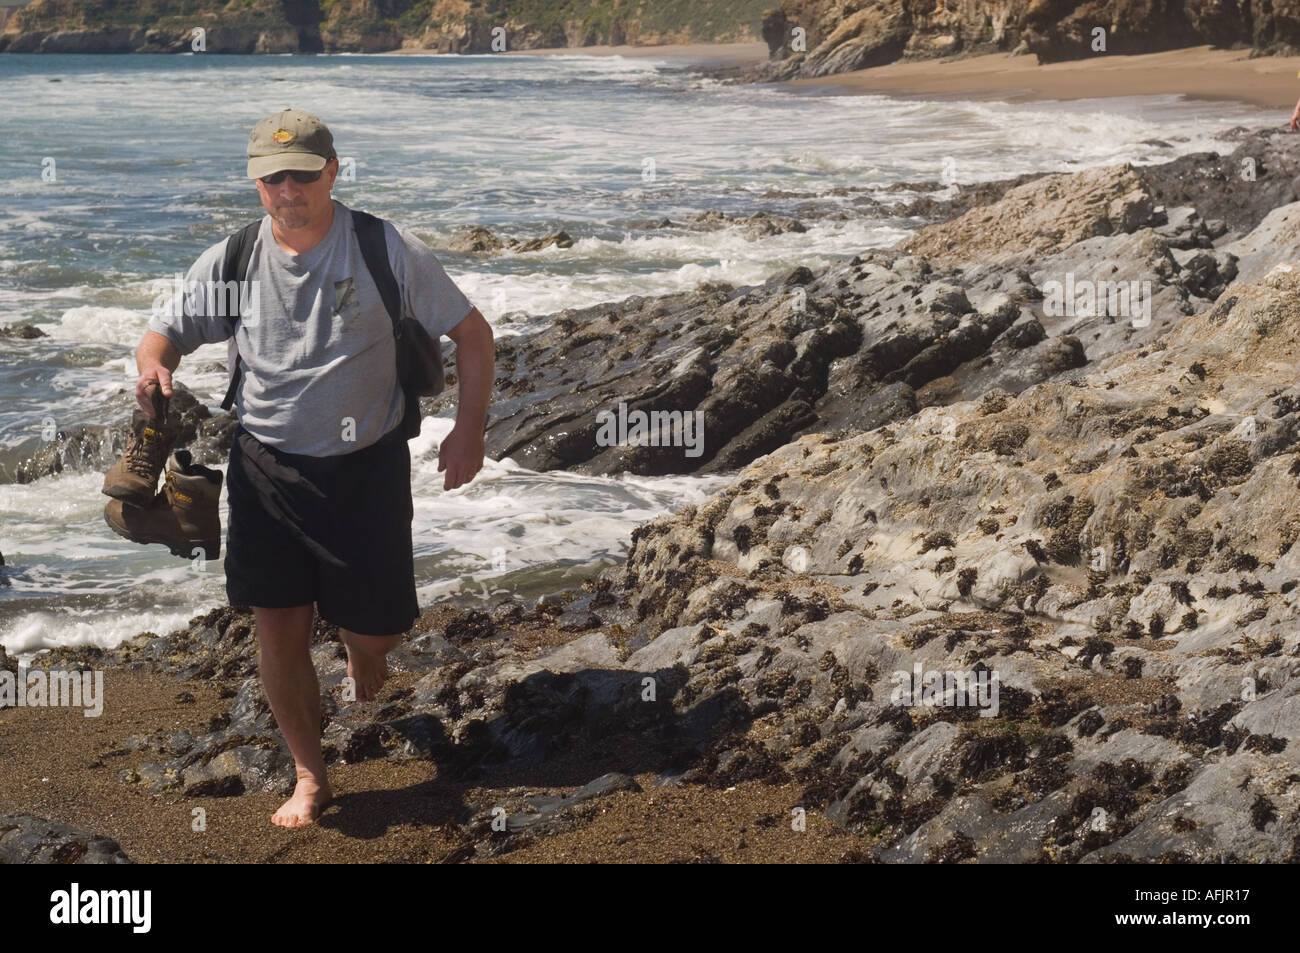 man in shorts a t shirt and baseball cap carrying hiking boots and wearing  a knapsack walking over barnacle covered rocks 98cda96c8f7